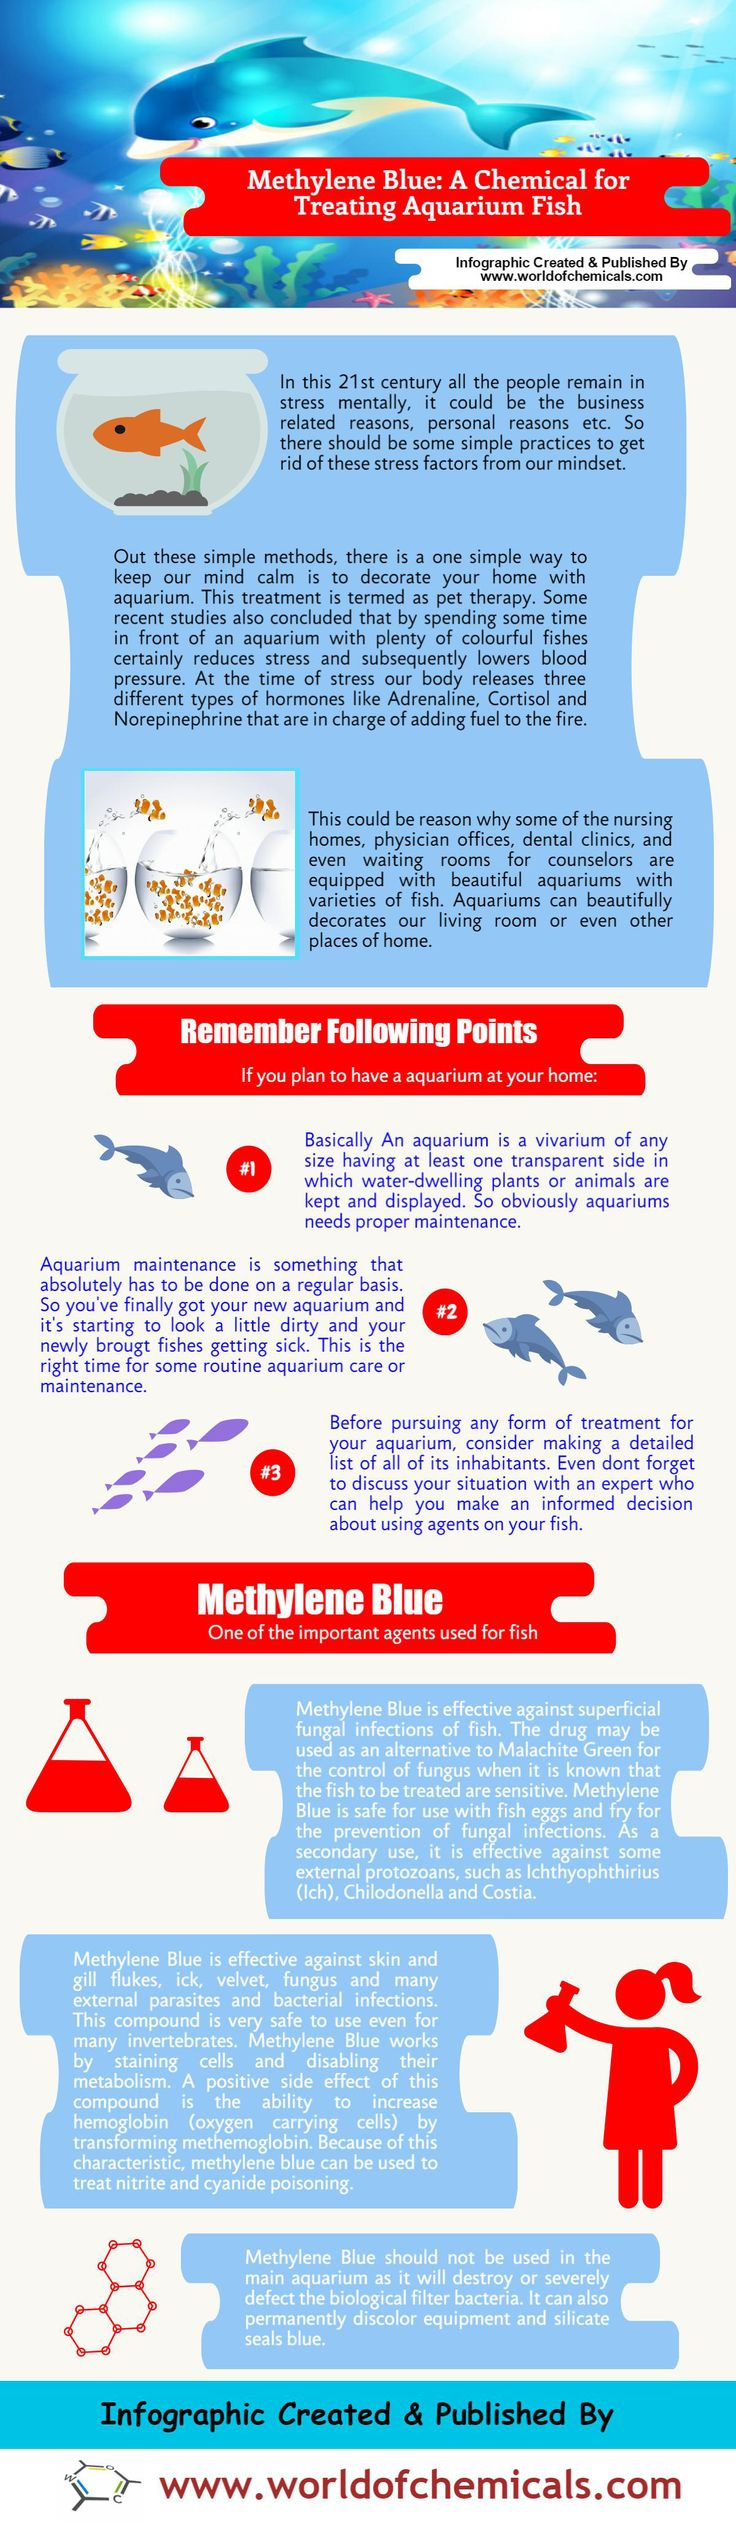 Fish aquarium jobs - Methylene Blue A Chemical For Treating Aquarium Fish